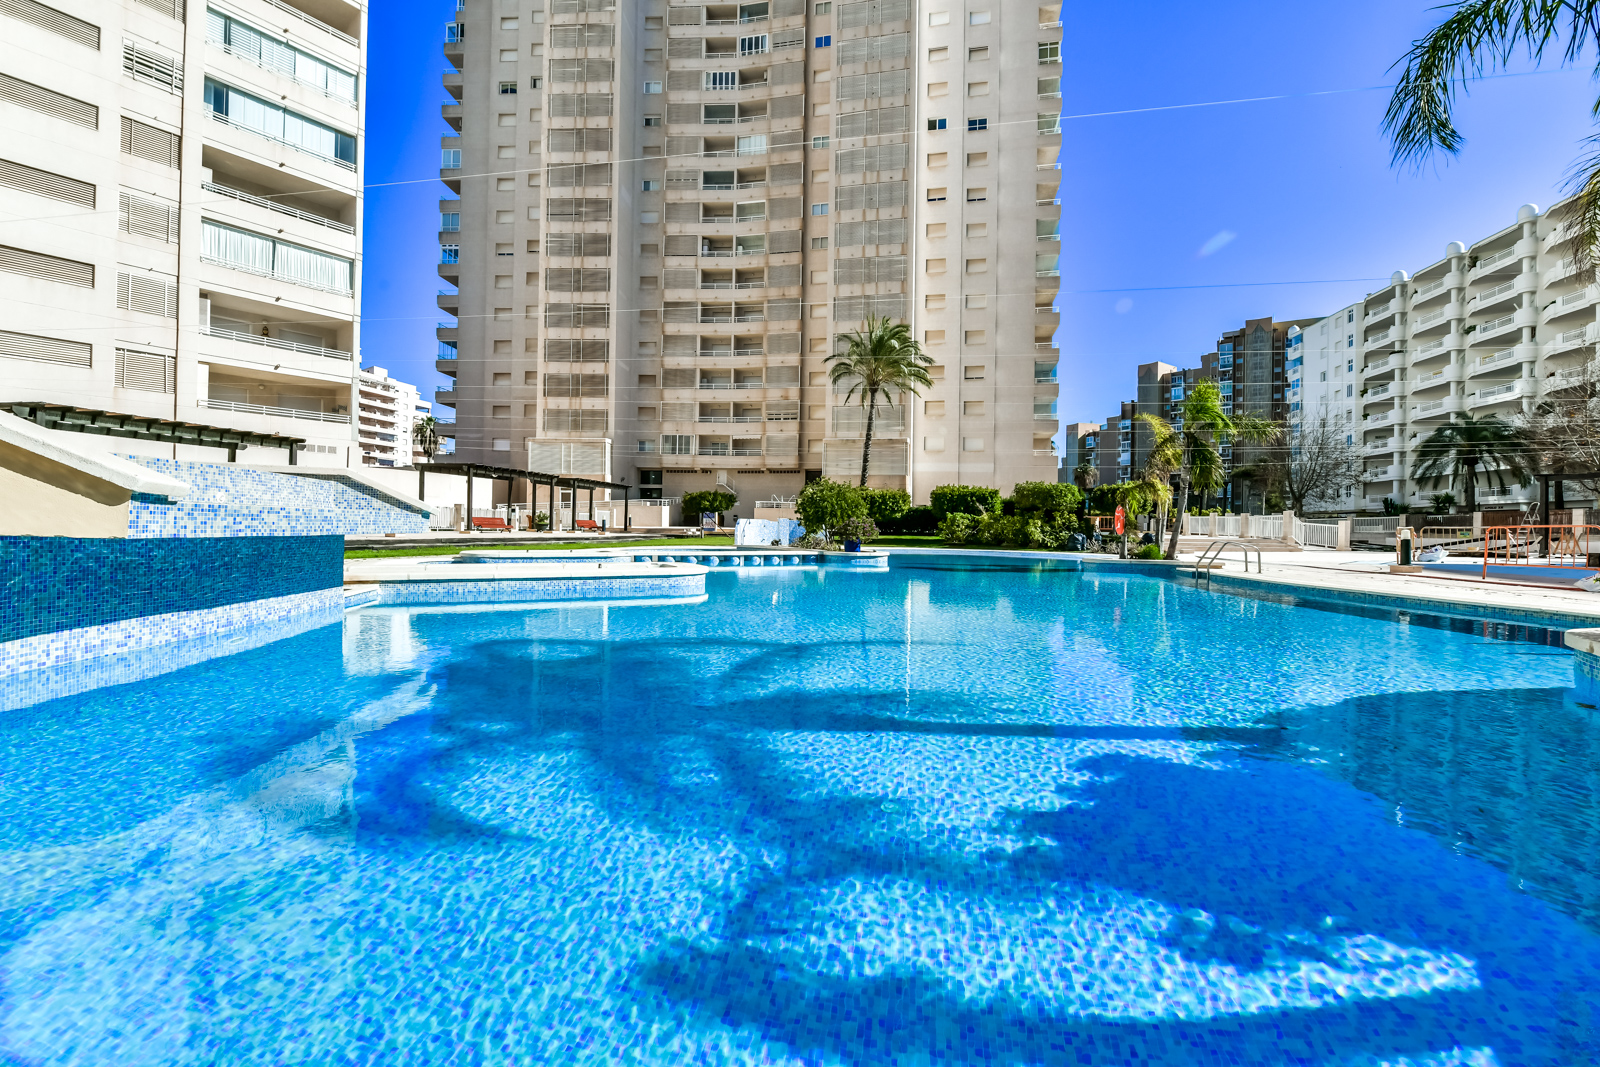 Apartamento Apolo XVI 73, Apartment  with communal pool in Calpe, on the Costa Blanca, Spain for 4 persons...